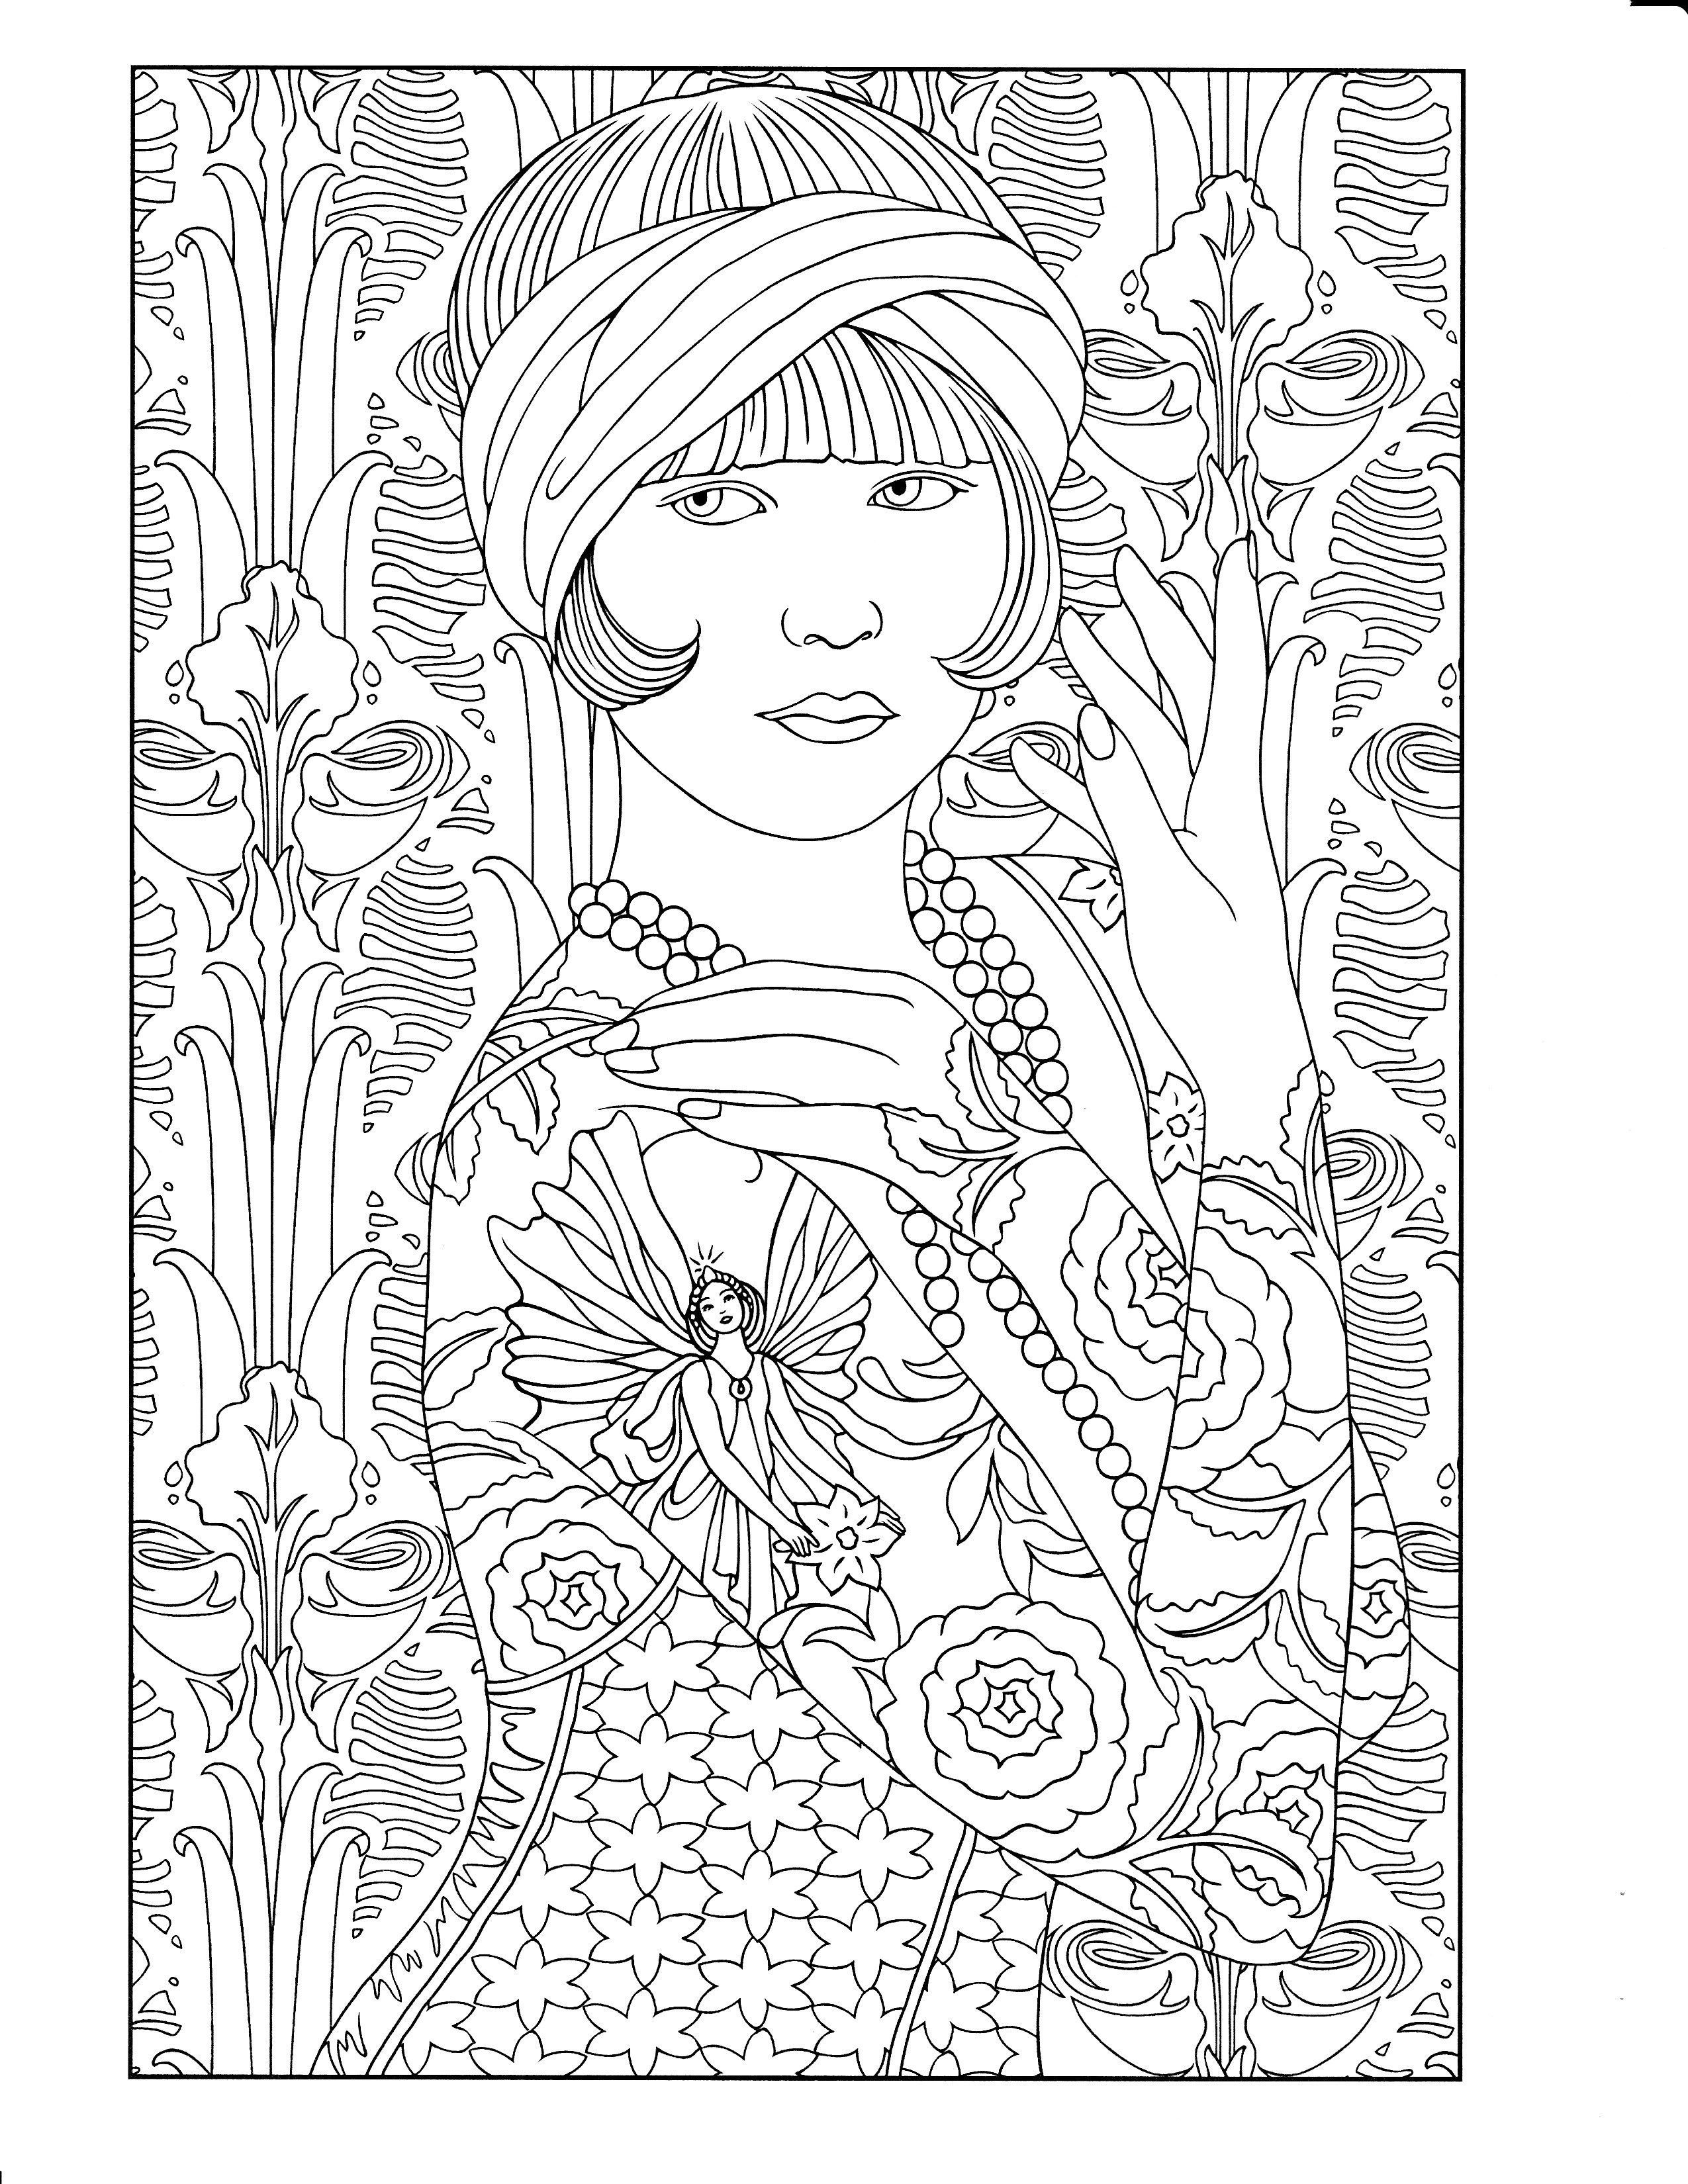 Tattoos Coloring Pages - Coloring Home | 3300x2550